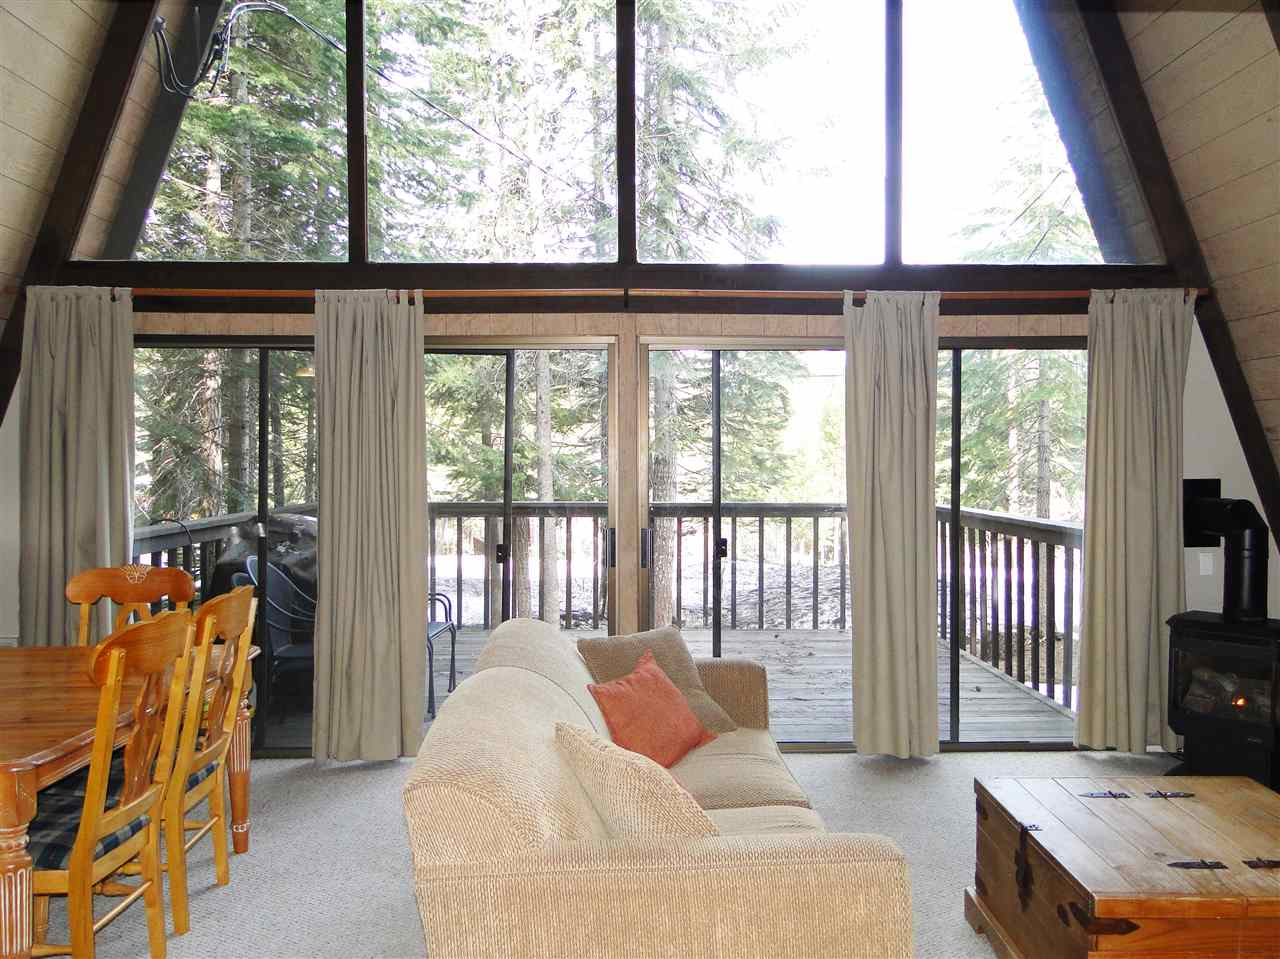 Additional photo for property listing at 15619 Northwoods Boulevard 15619 Northwoods Boulevard Truckee, California 96161 United States